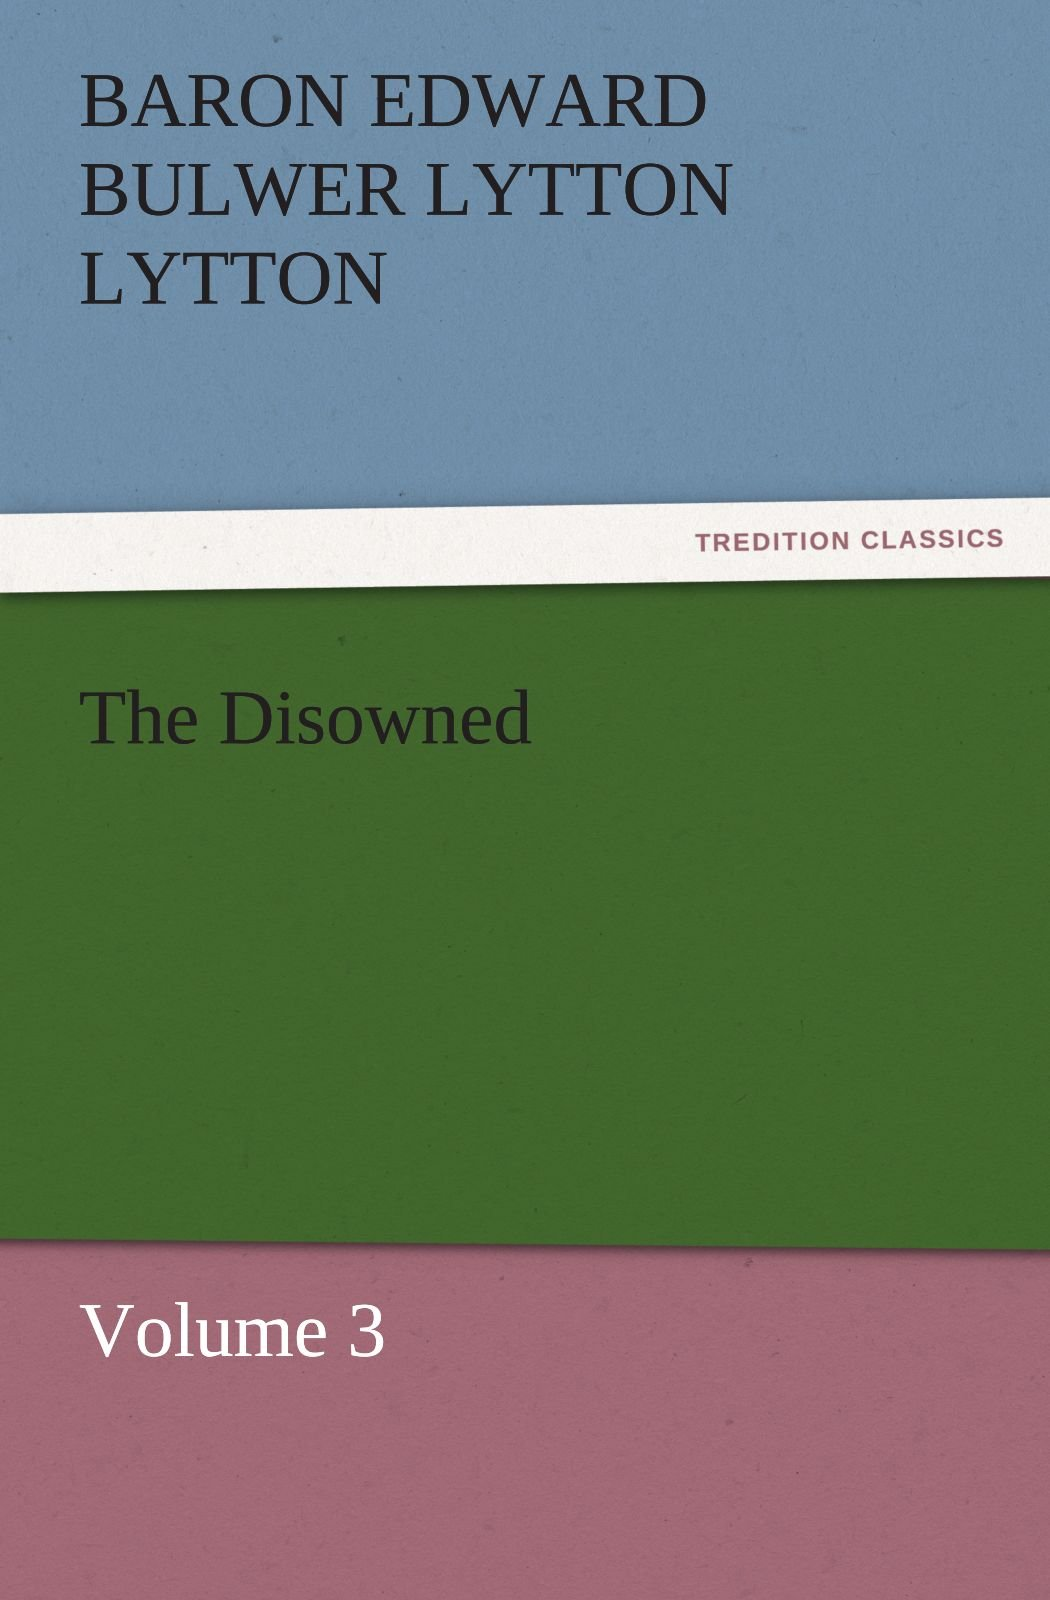 The Disowned: Volume 3 (TREDITION CLASSICS) PDF